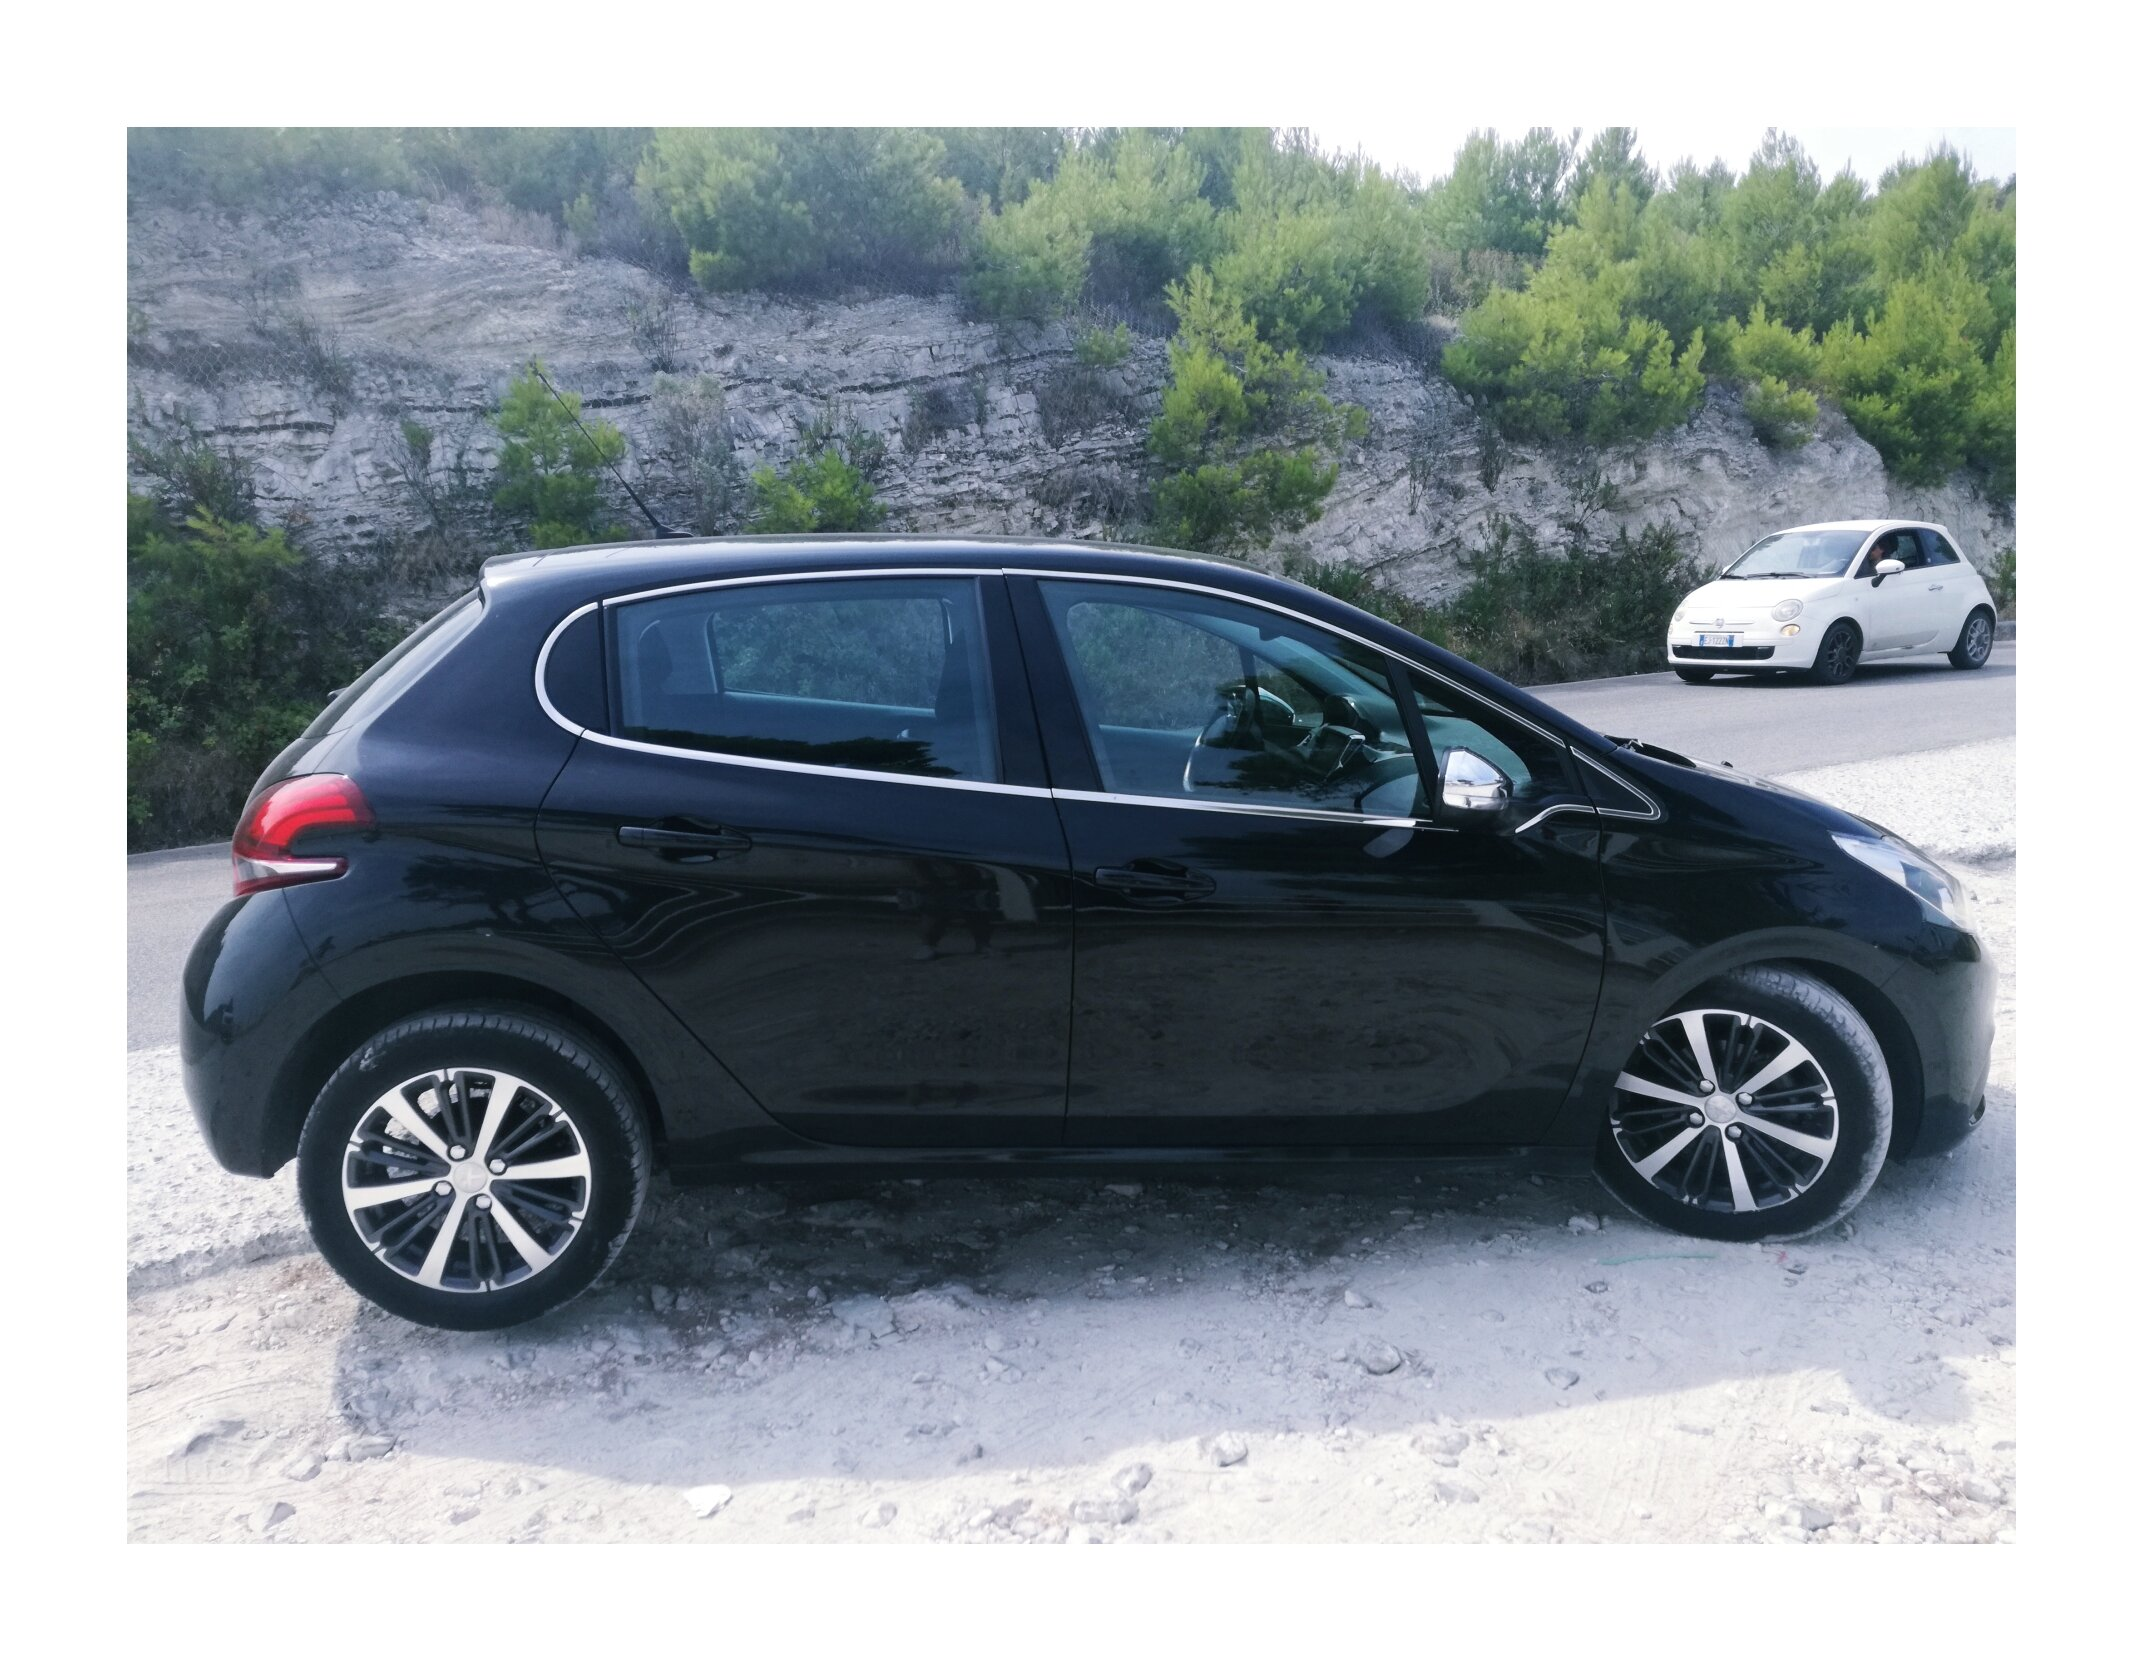 - I booked the car through Rentalcars.com, which is an intermediary company, and ultimately my direct rental company was SicilyByCars. What does such situation mean? It means that if an accident or damage occurs, I would first have to pay the direct rental company's account first (here SicilyByCars) and only then apply for a refund from the agent (Rentalcars.com). Risky? A bit yes, but the rental price was very tempting. I also bought additional insurance at Generali, which guaranteed financial assistance in the event of a collision.